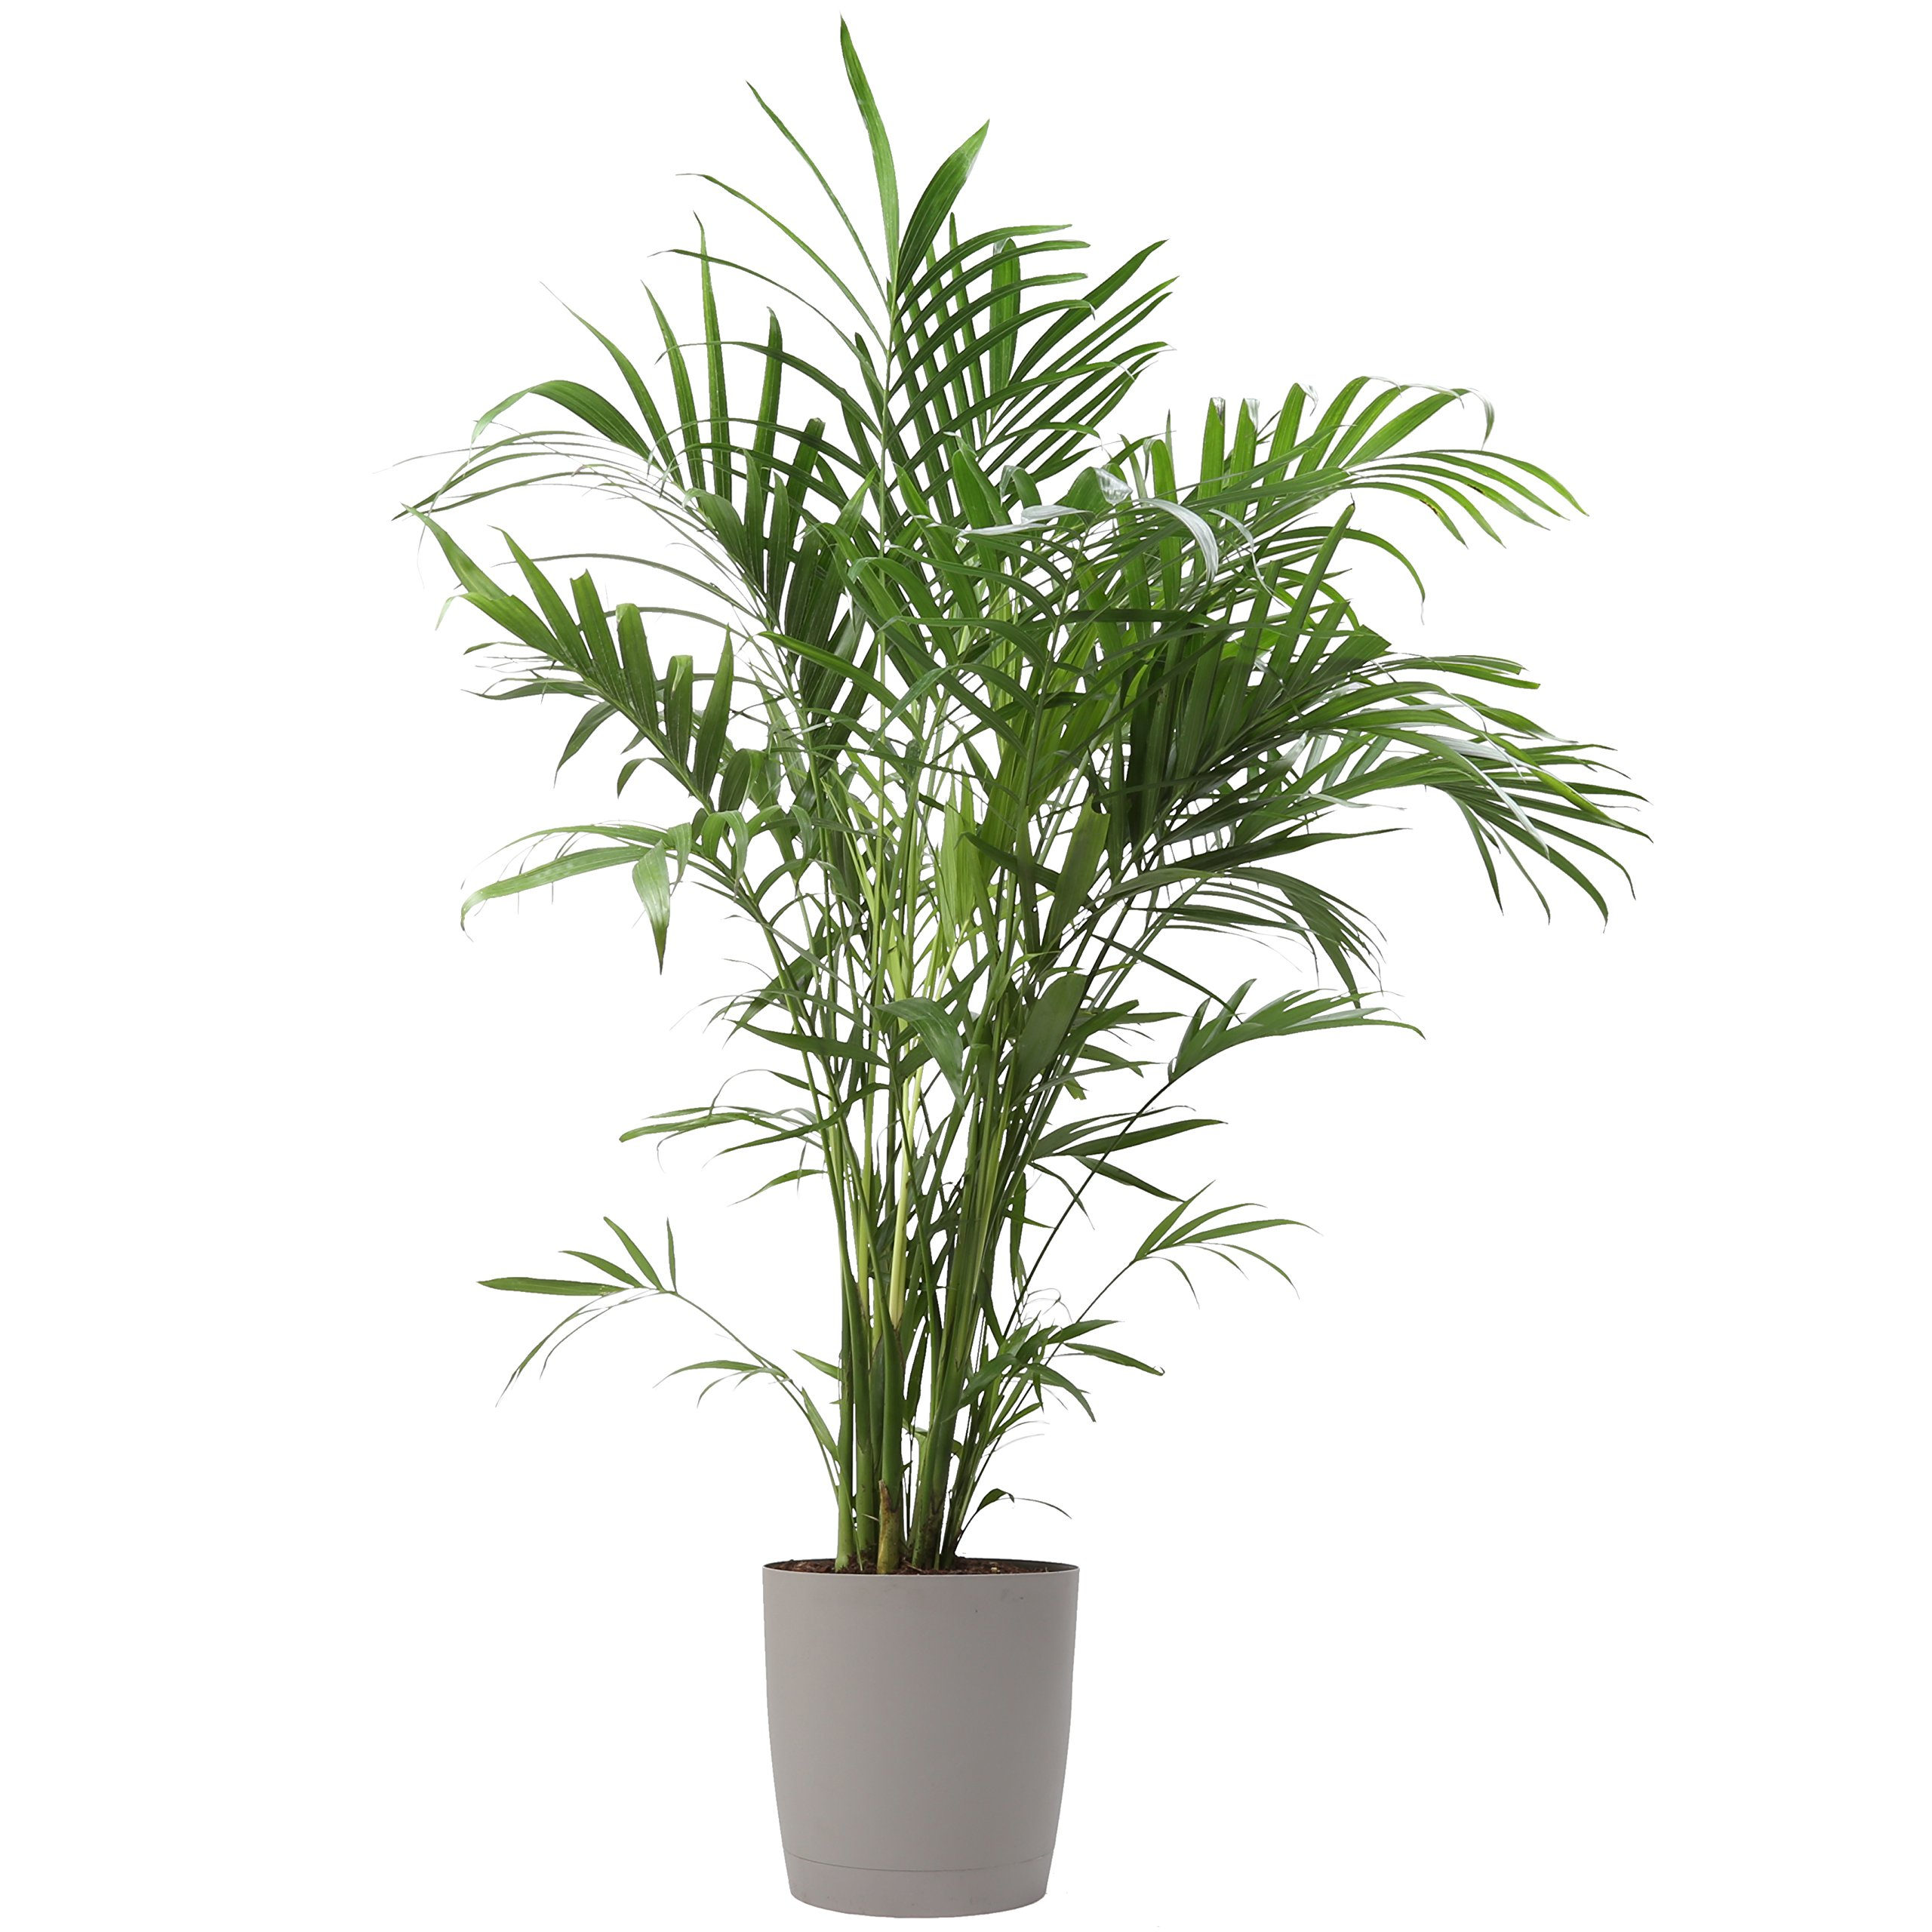 Costa Farms, Premium Live Indoor Cat Palm, Chamaedorea cataractarum, Floor Plant, Gray-Taupe Decorator Pot, Shipped Fresh from Our Farm, Excellent Gift by Costa Farms